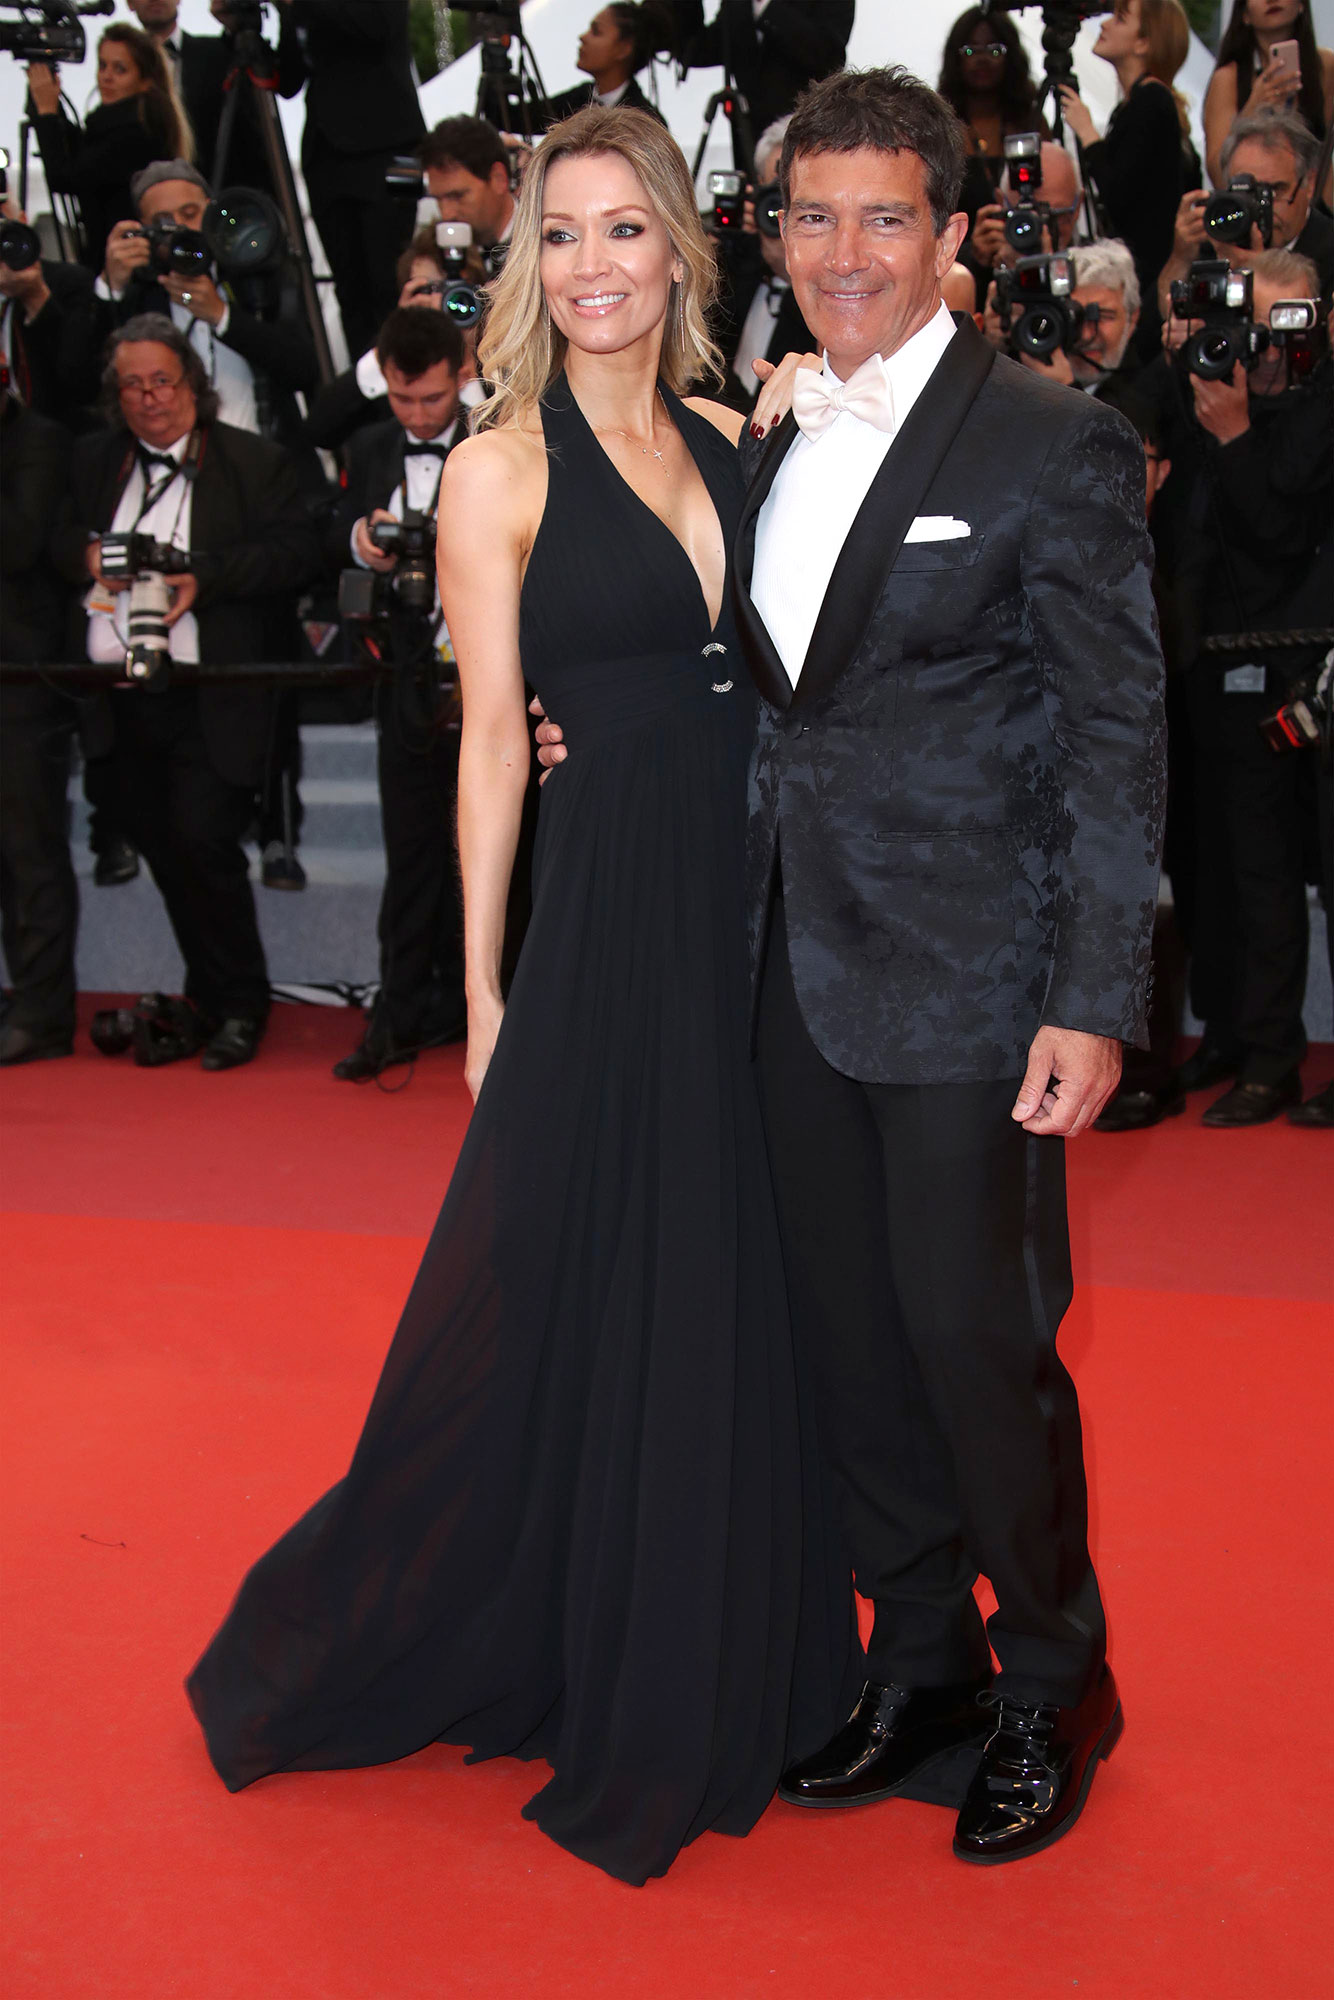 Nicole Kimpel and Antonio Banderas Cannes Film Festival 2019 Most Stylish Guys Red Carpet - Posing alongside his girlfriend Nicole Kimpel, the Pain and Glory star rocked a floral-printed jacket at the film's premiere on Friday, May 17.